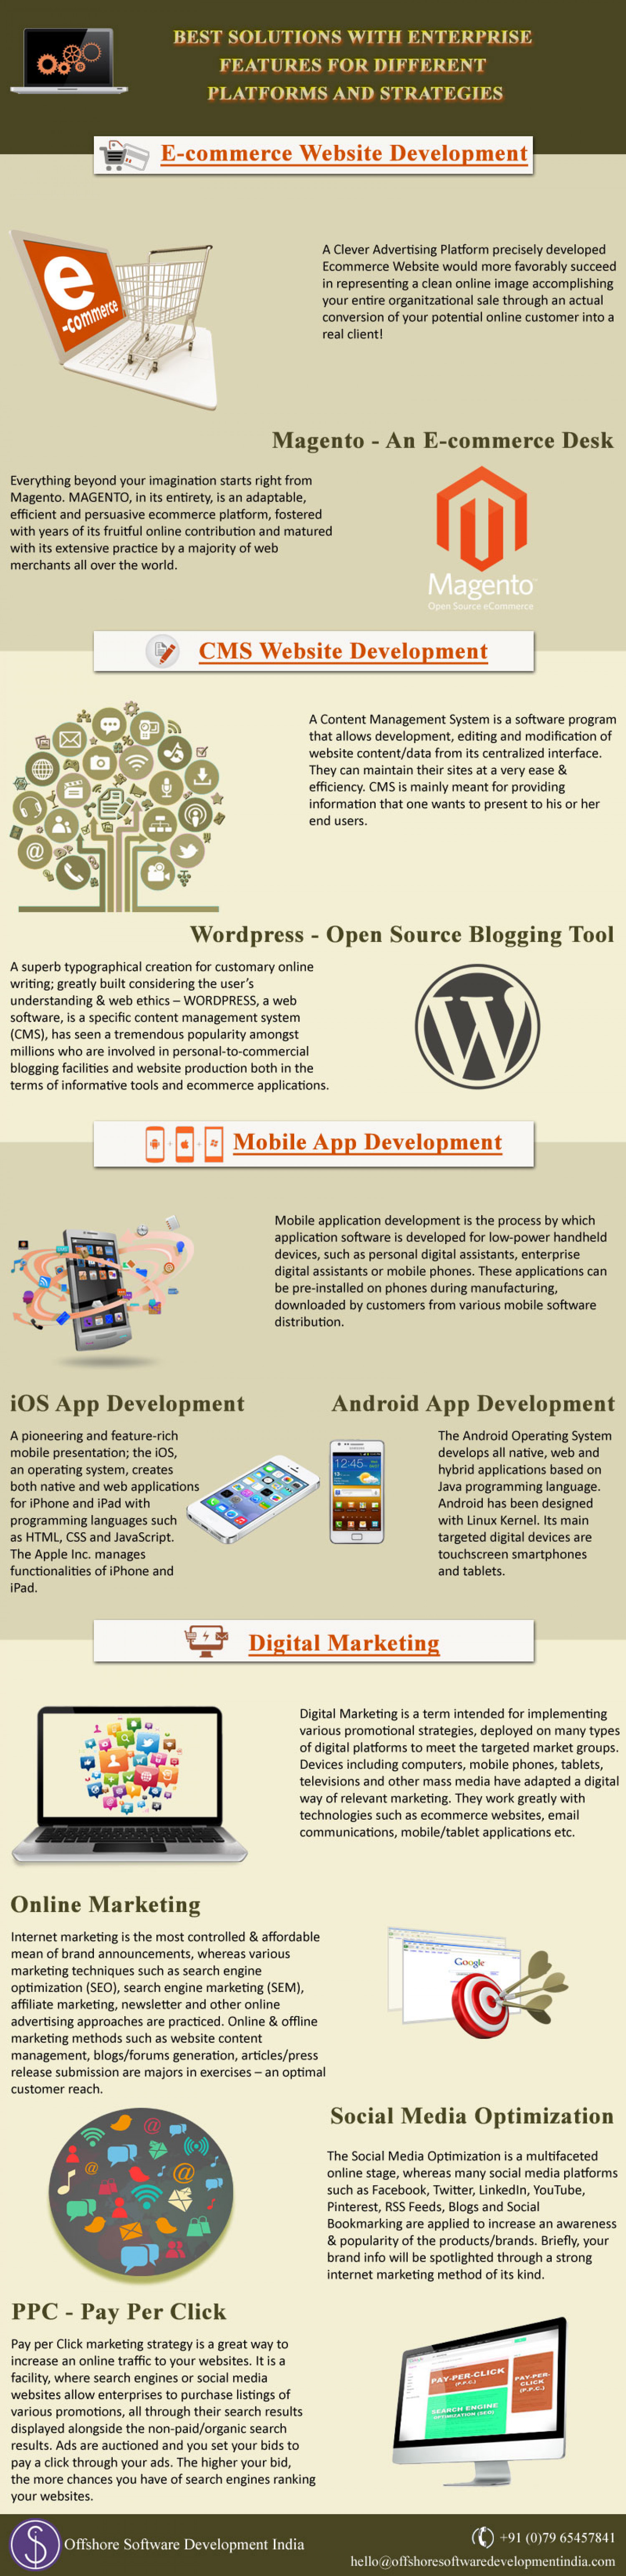 Best Solutions With Enterprise Features For Different Platforms and Strategies Infographic